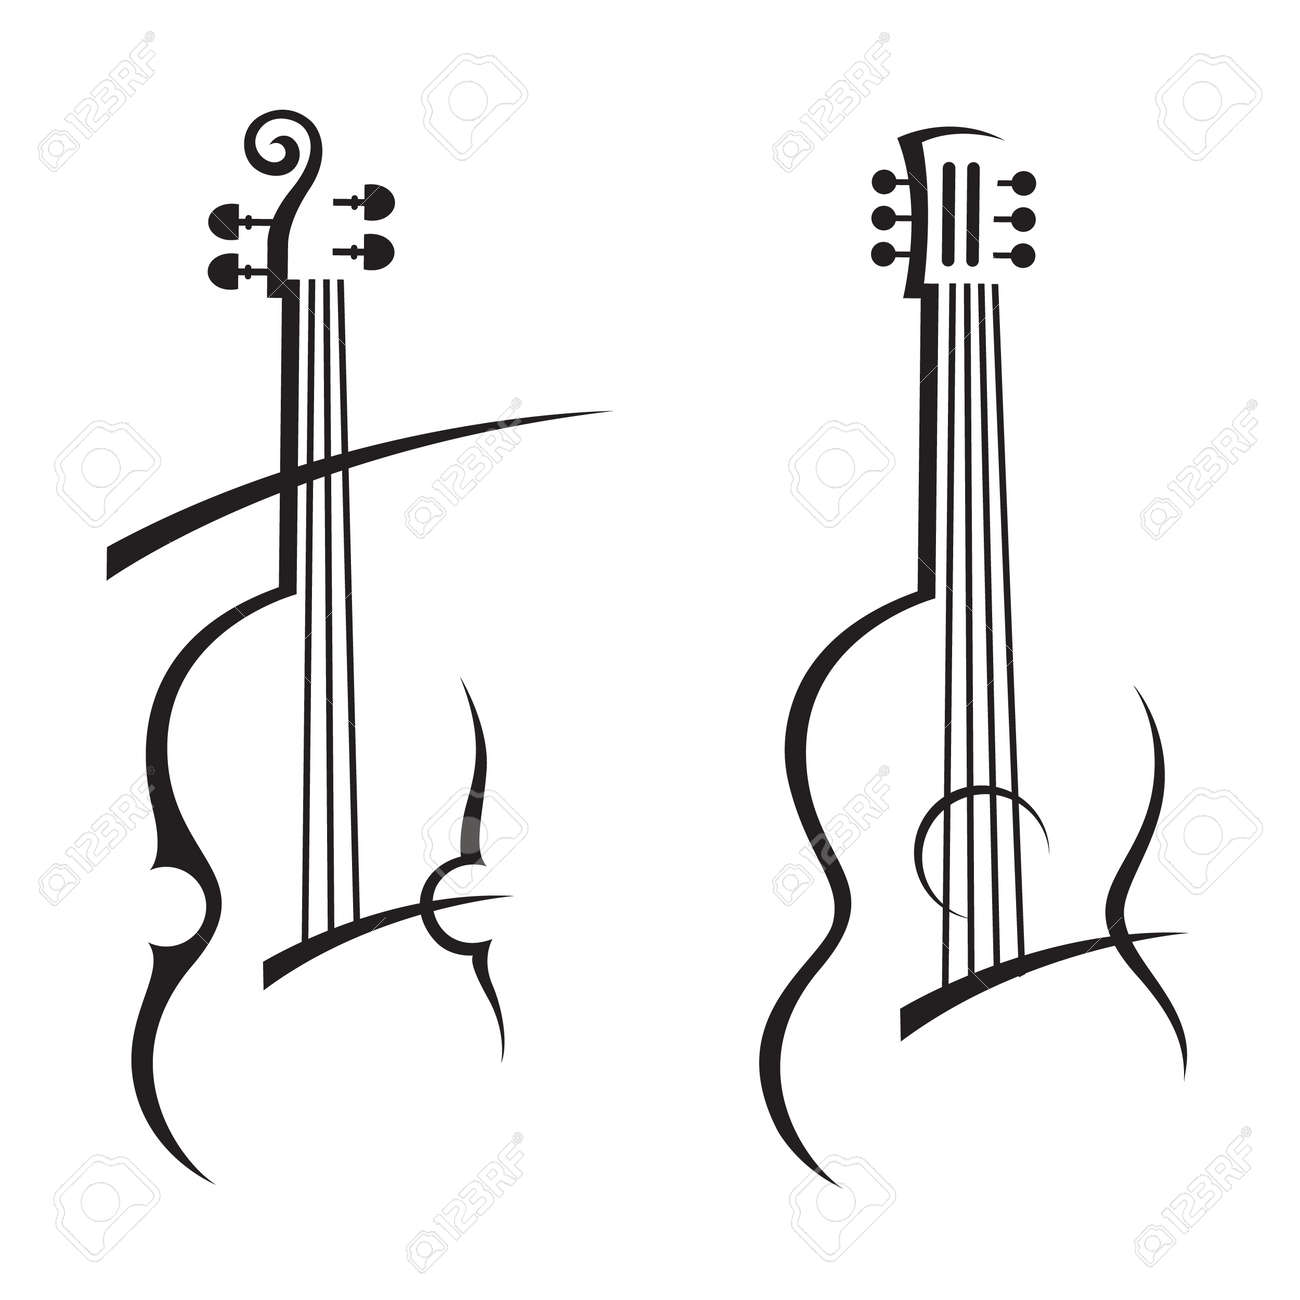 abstract illustration of violin and guitar - 53988824